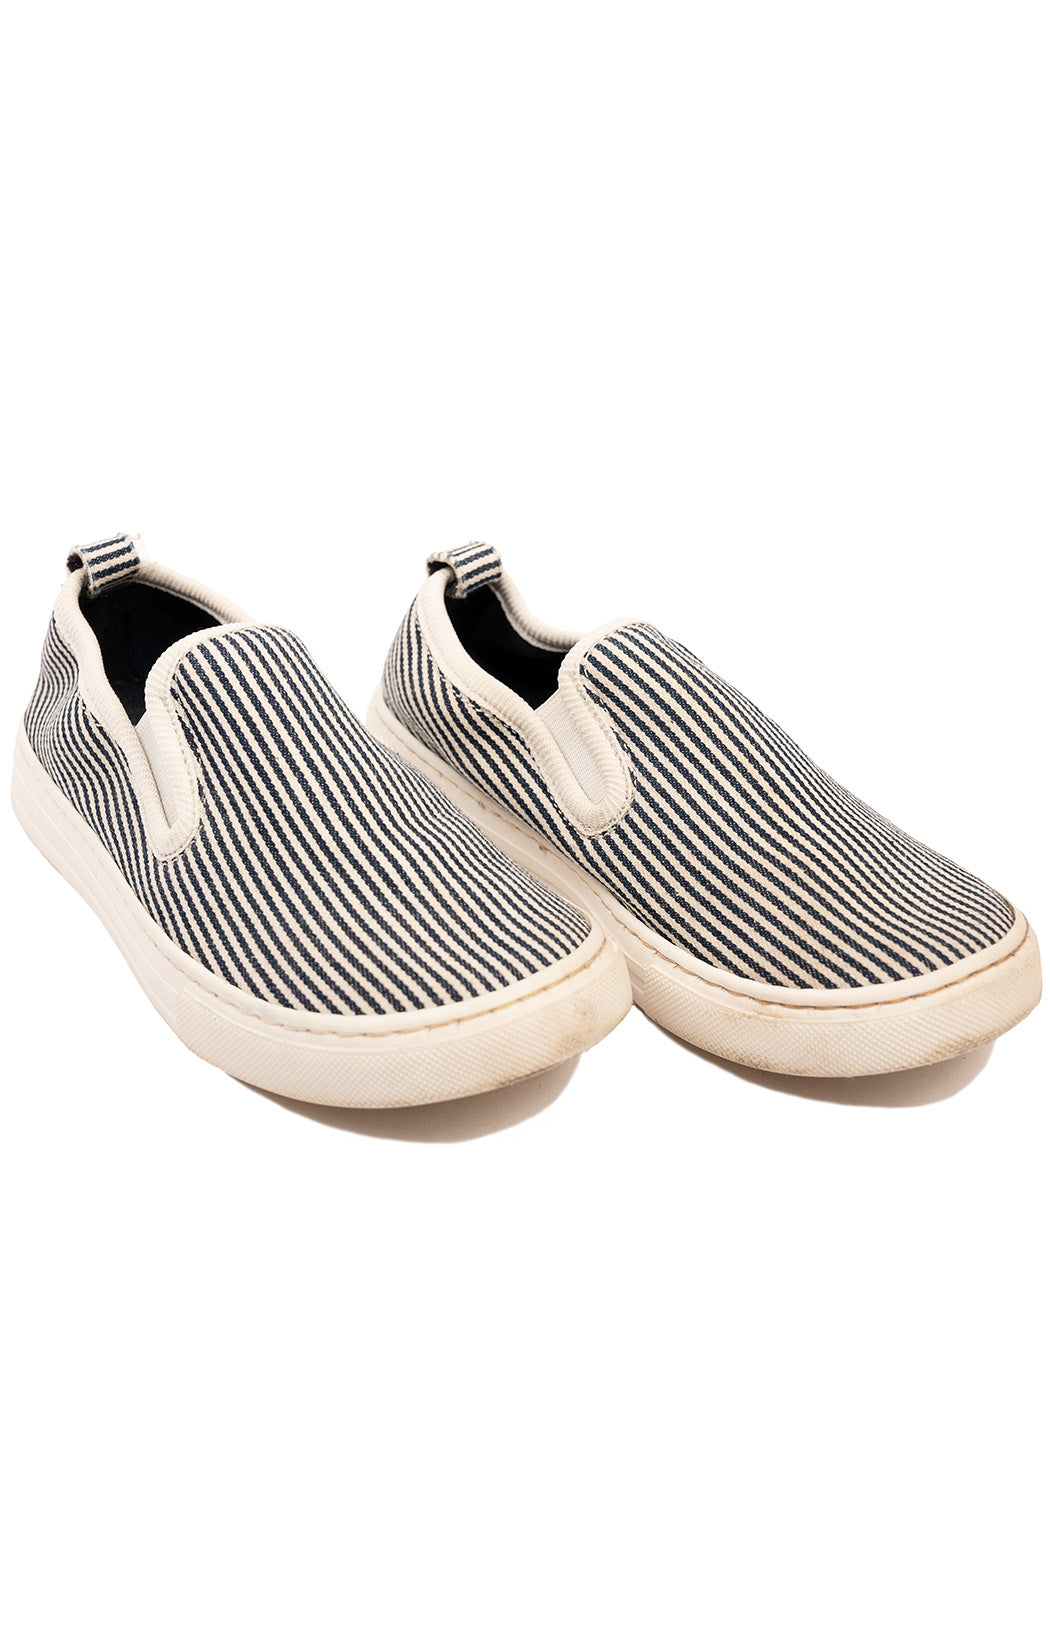 STELLA MCCARTNEY  Tennis shoes  Size: 28 (comparable to US 11)